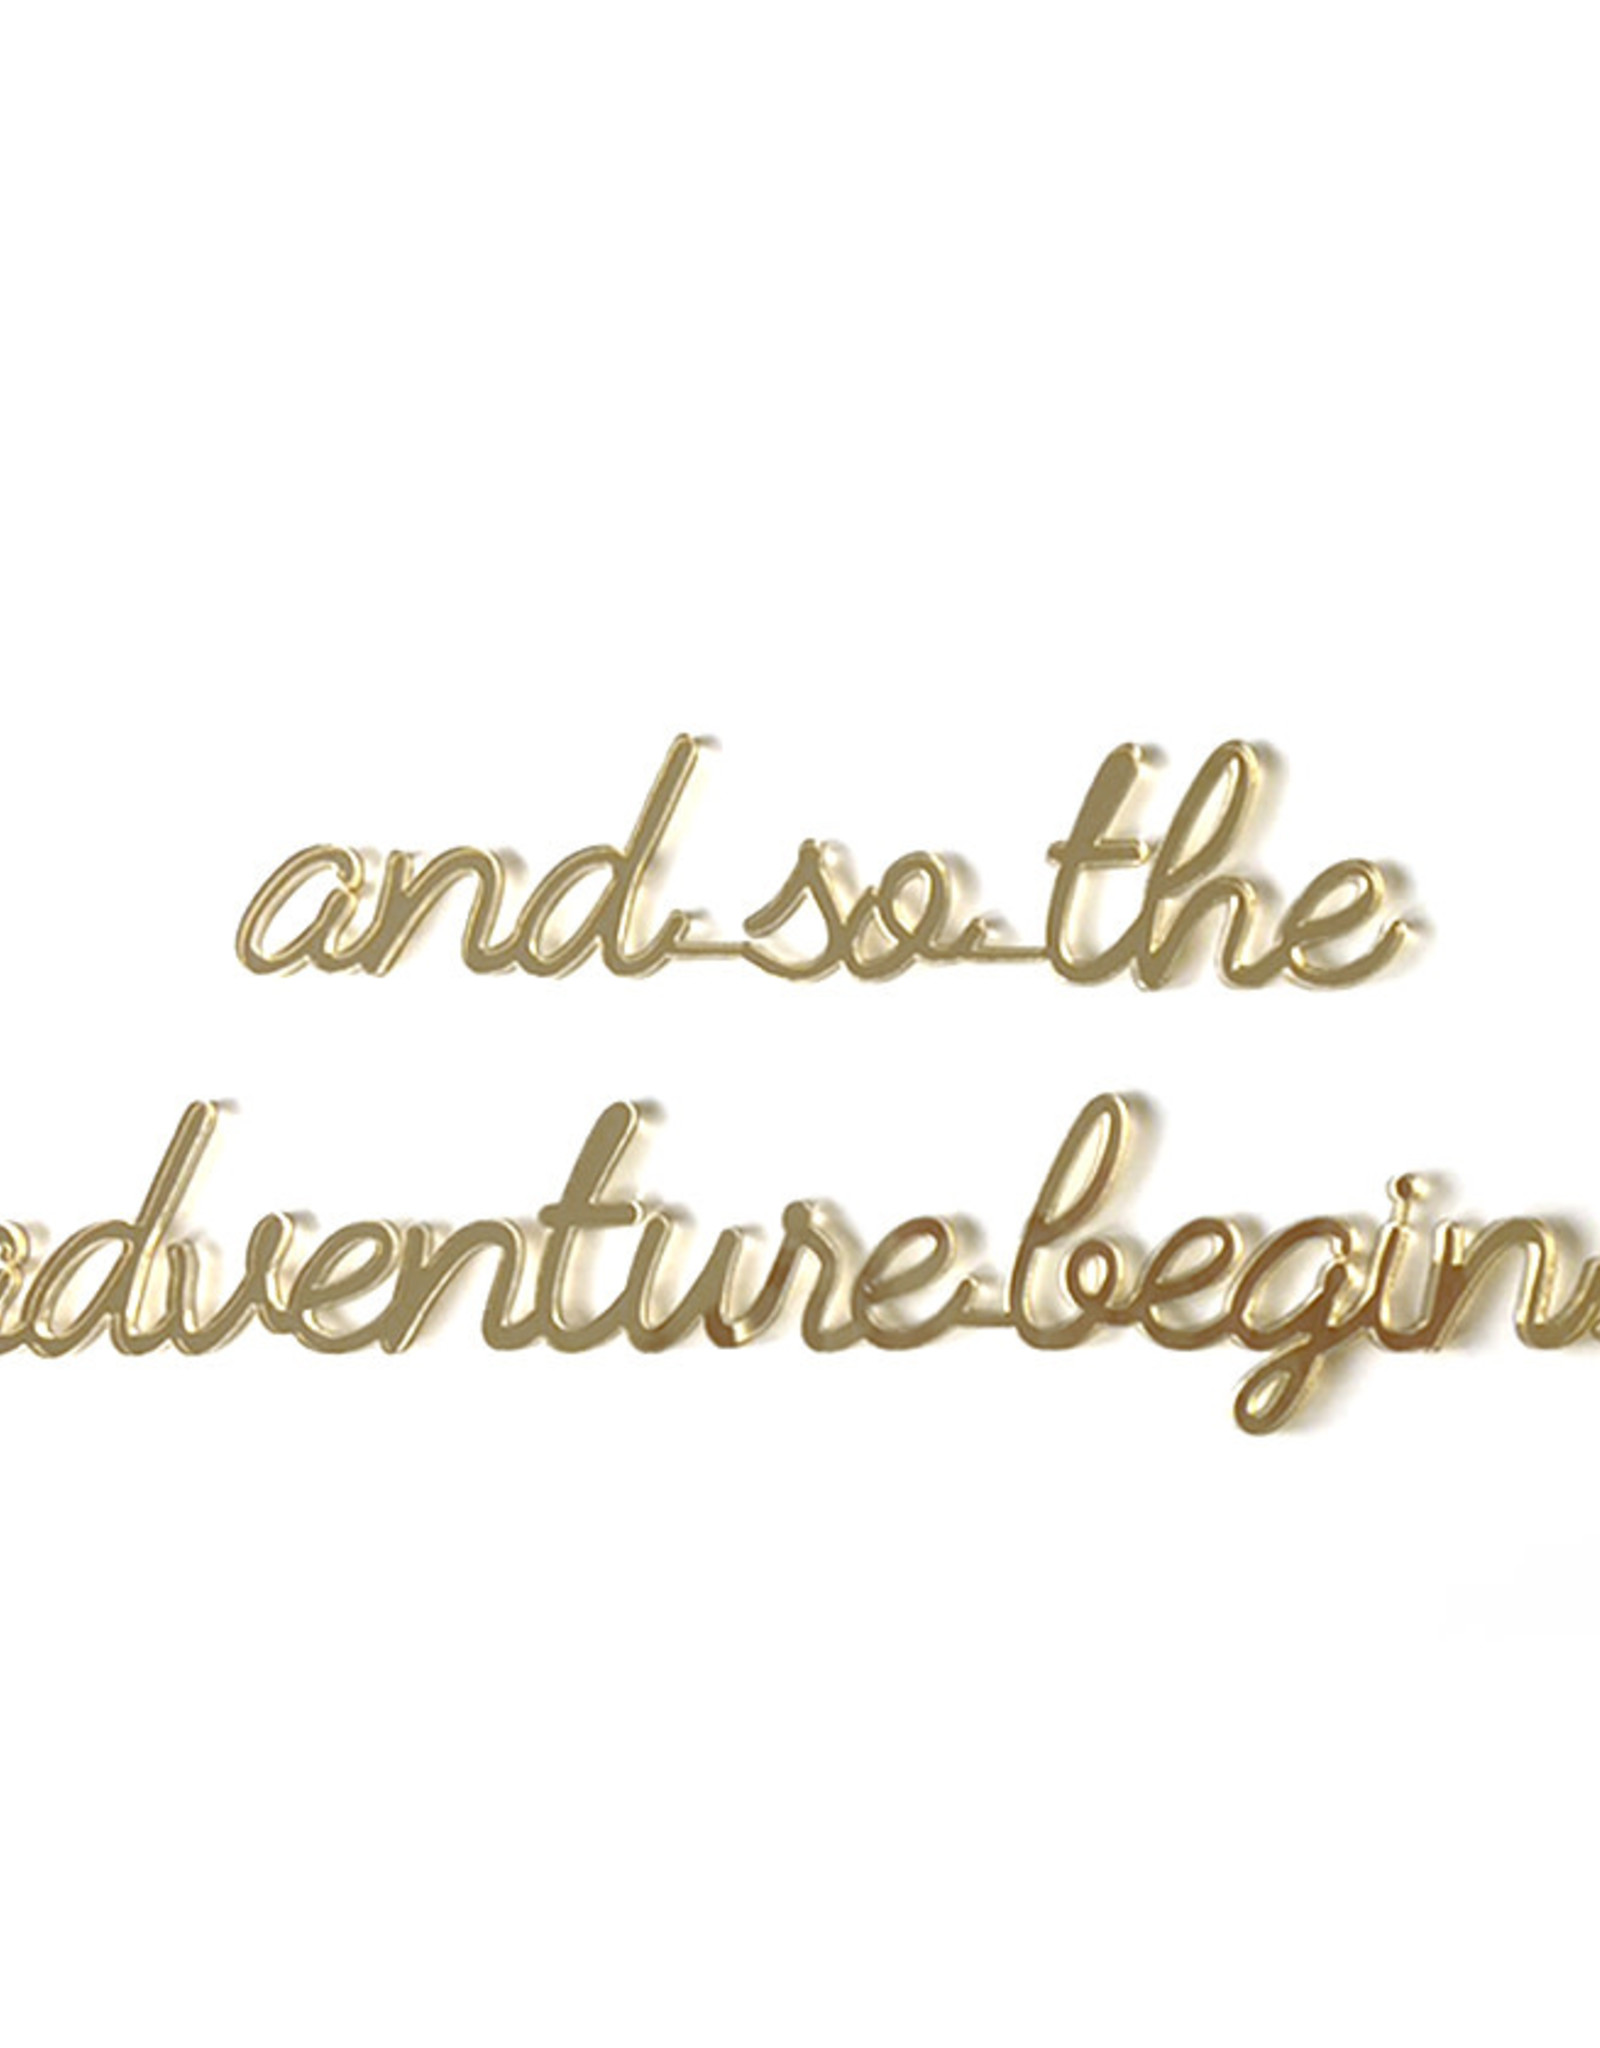 Goegezegd Quote And so the adventure begins-gold